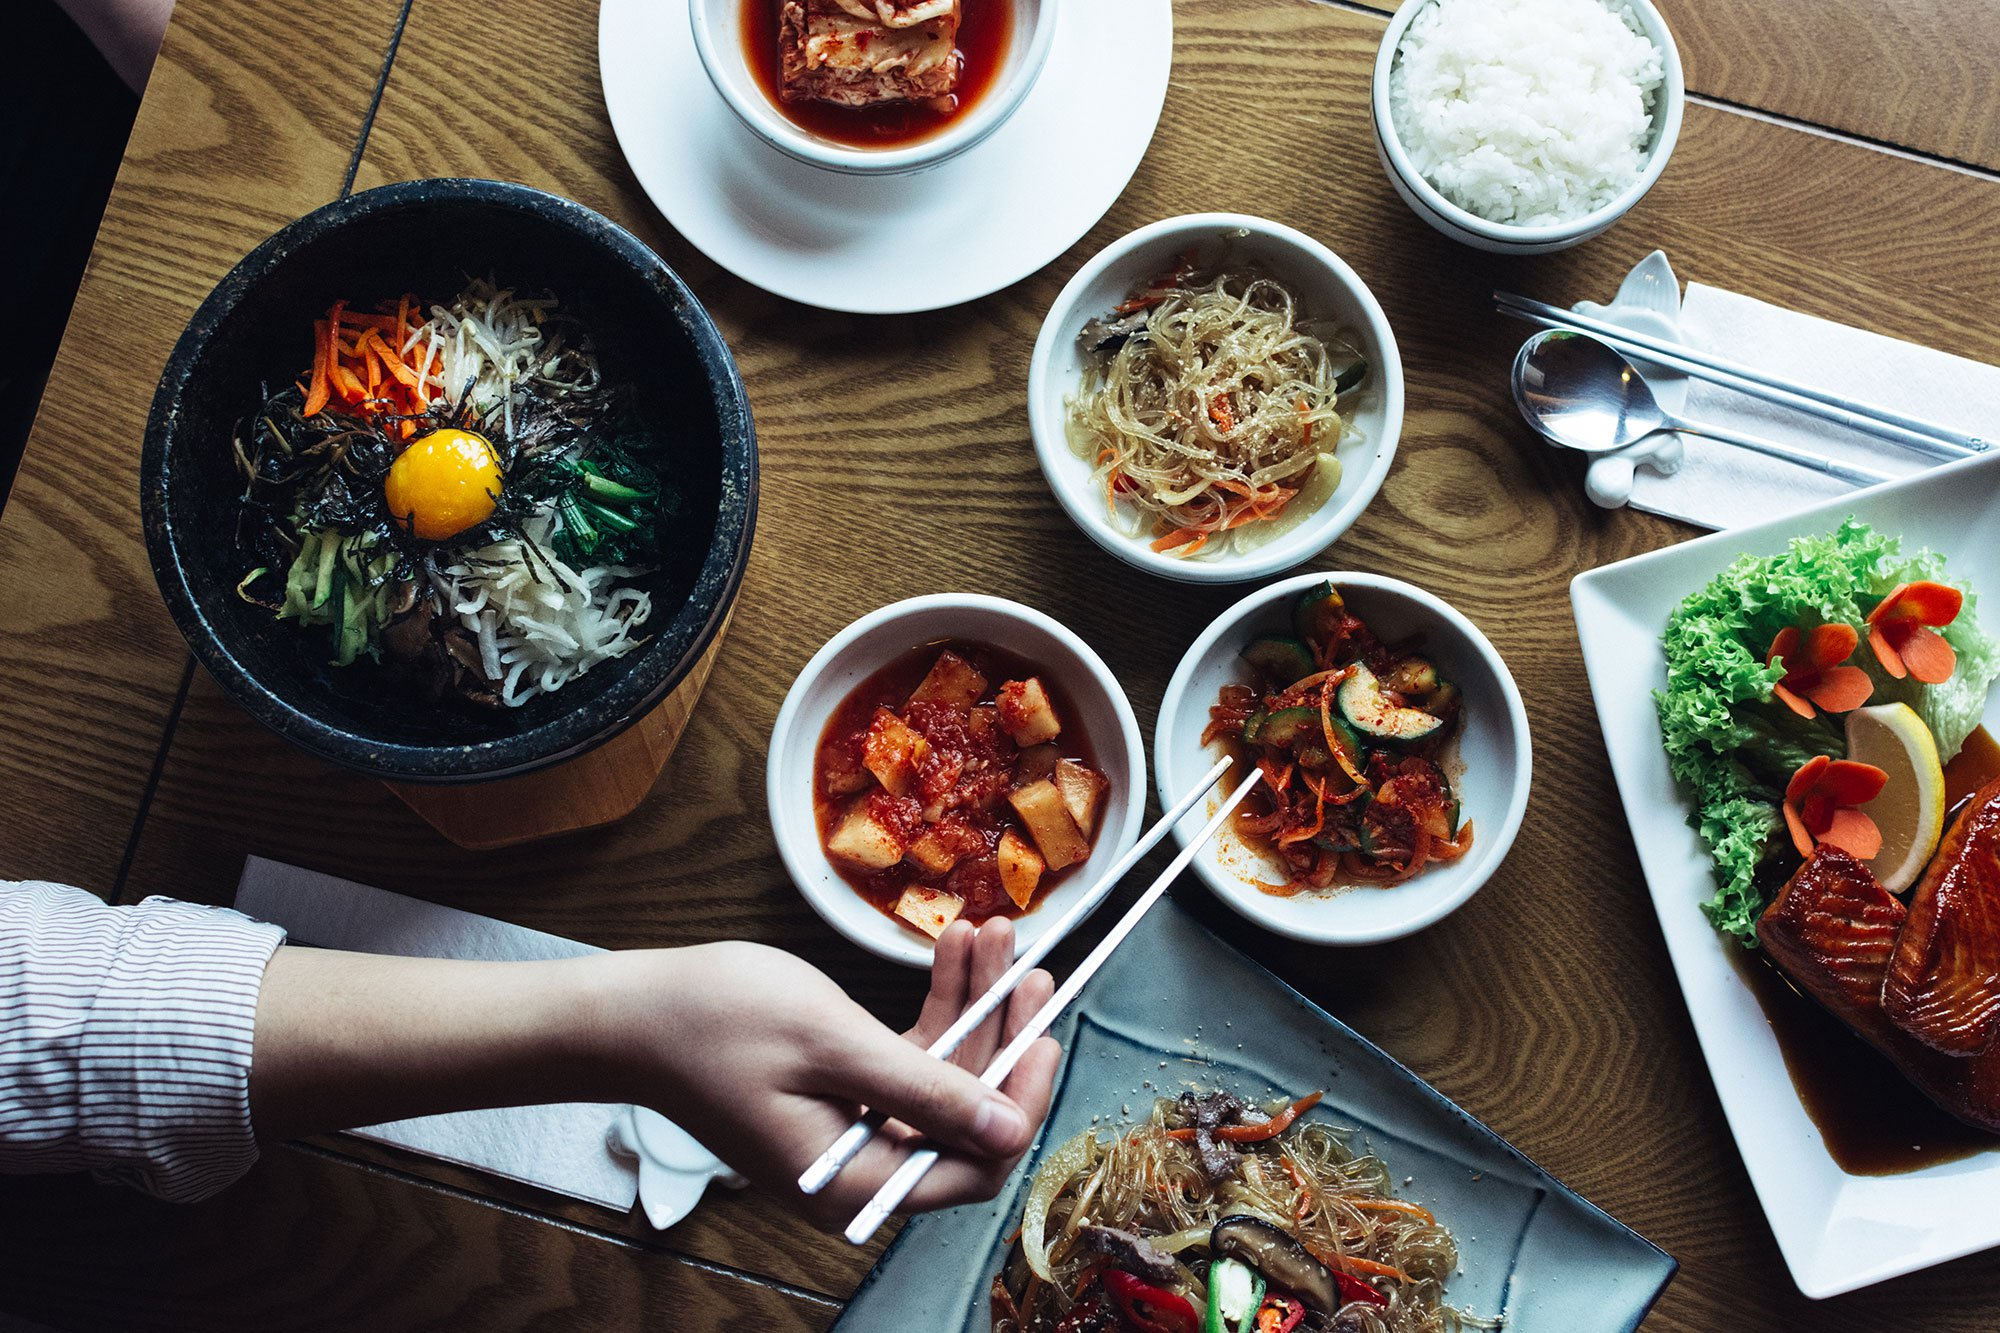 Overhead view of a wooden table set with various Korean dishes as woman's hand holding chopsticks enters the frame